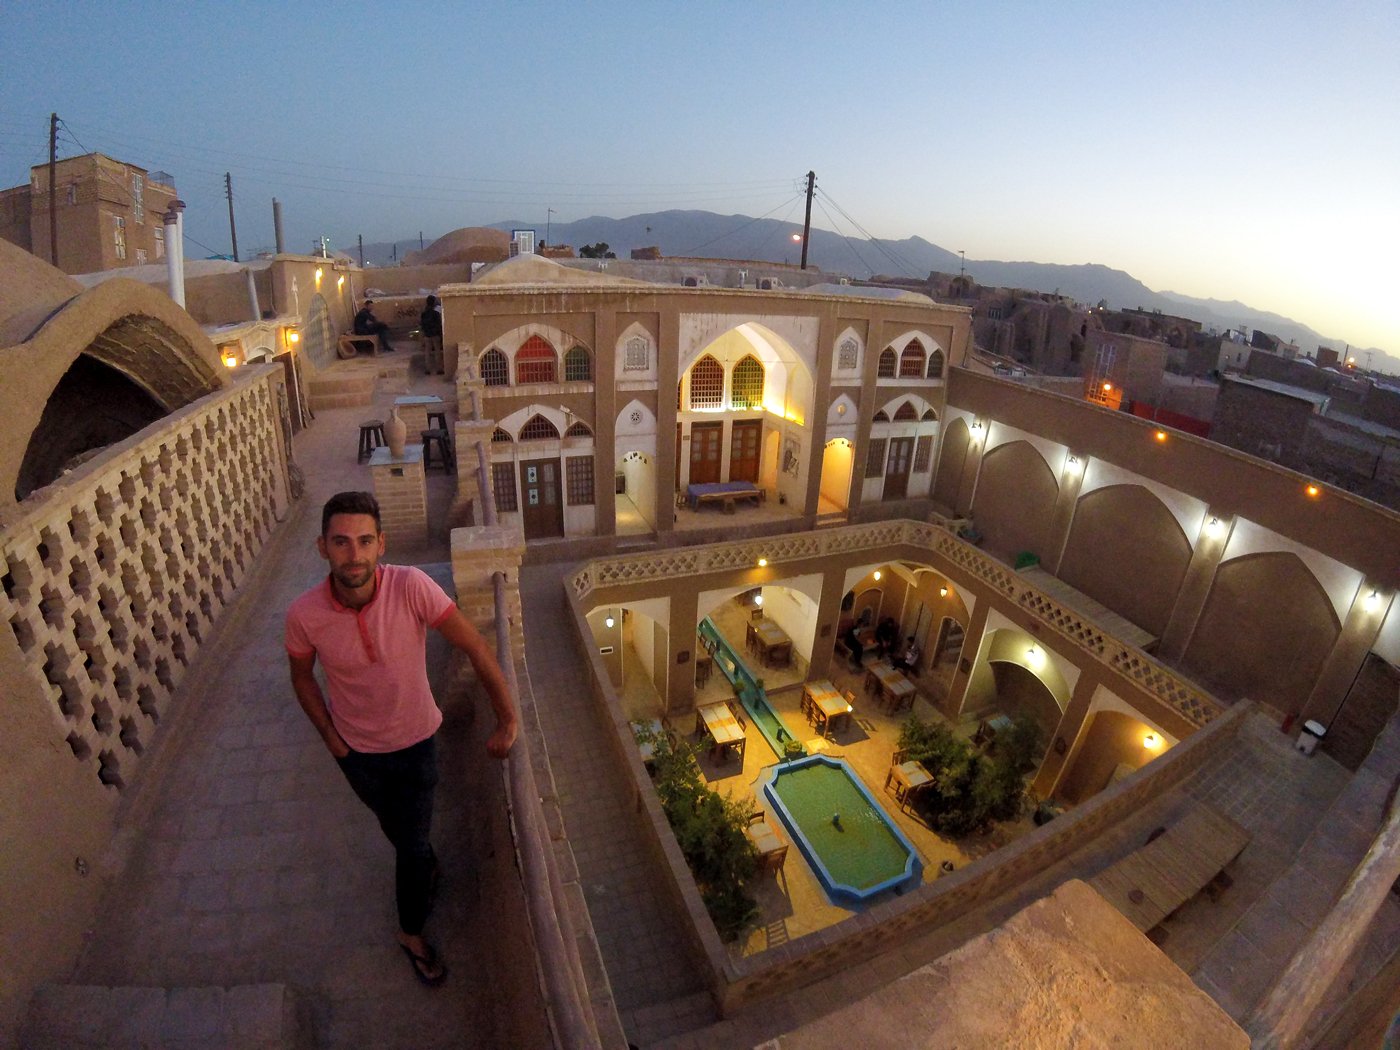 Bike trip, cross Iran by bike, view from the roof of Cafe Bam in Kashan. Cycling travel, biketouring, cycling Iran, view from Bam Café's rooftop in Kashan.